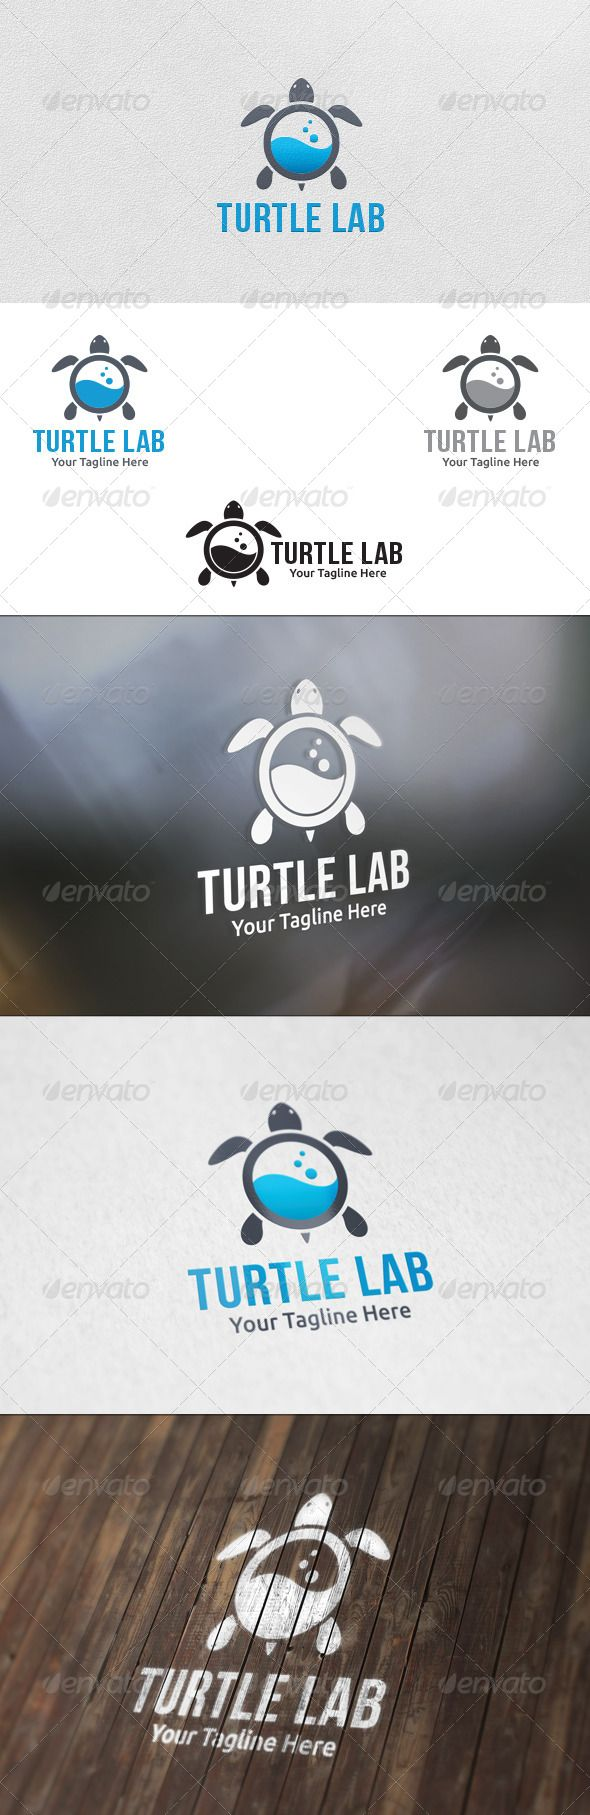 Turtle Lab - Logo Template